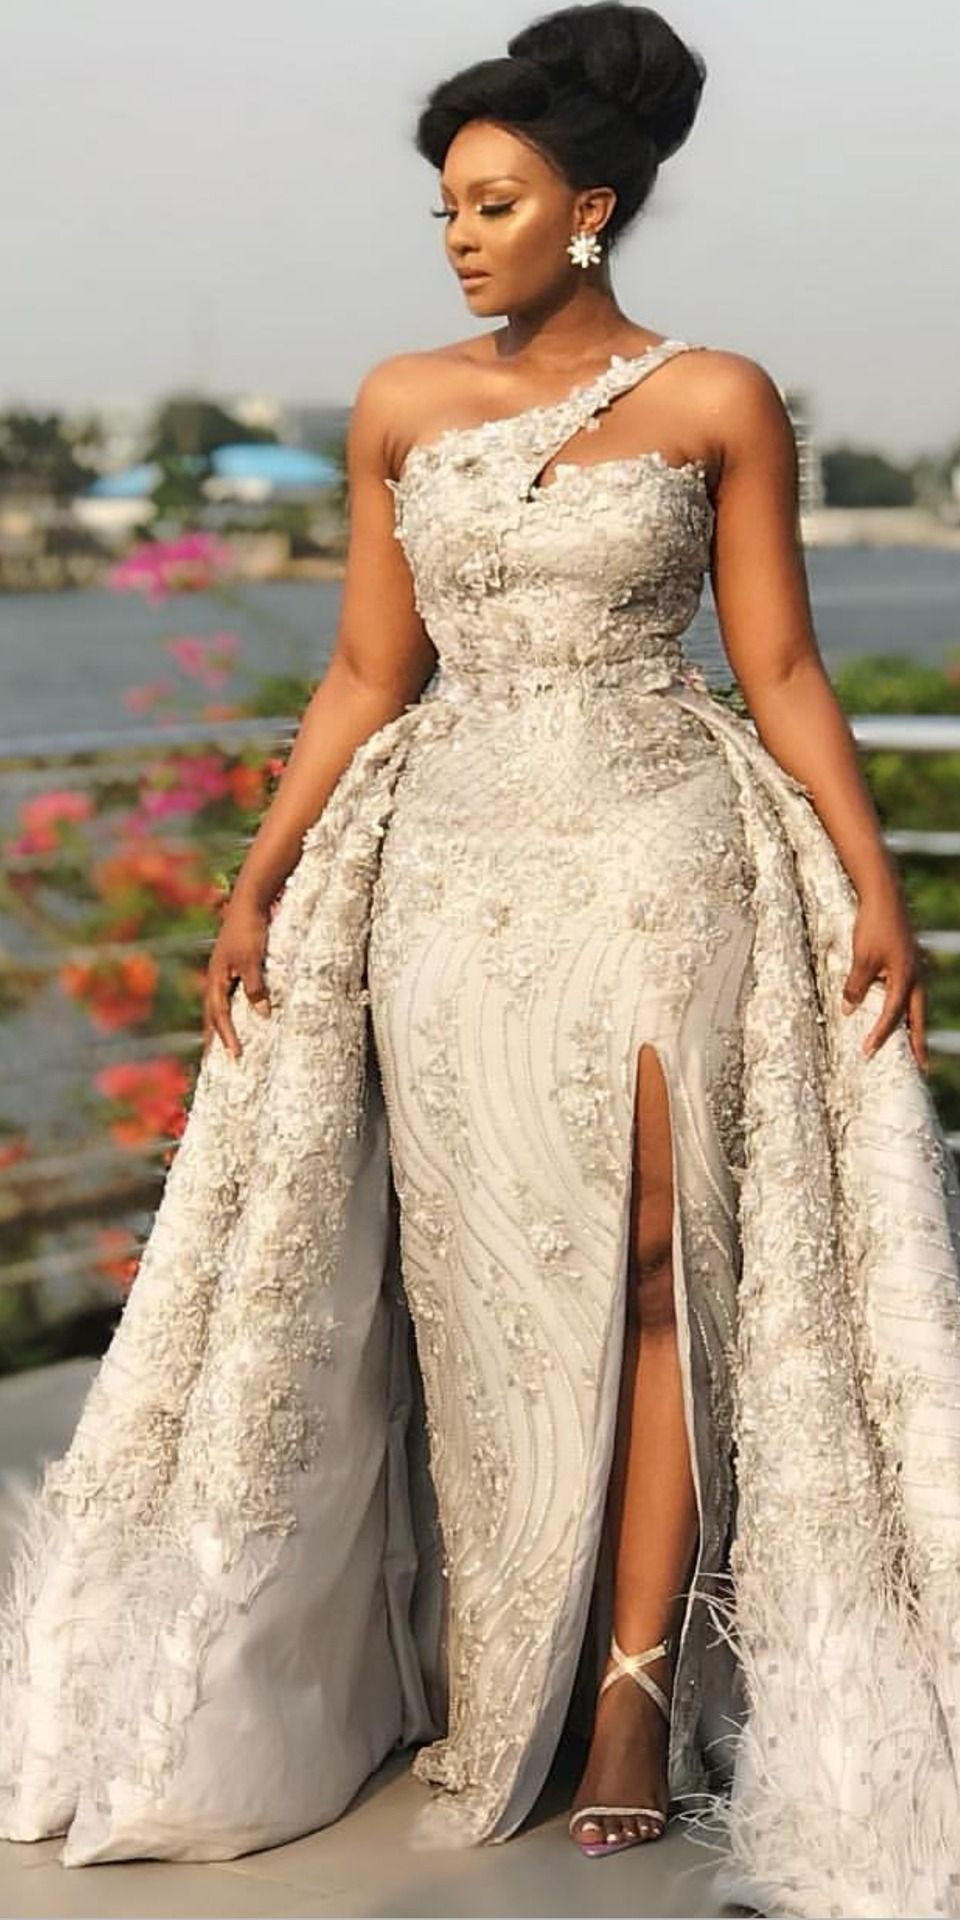 traditional dress,African prom dress African clothing for women,white reception dress bridesmaid dress African prom wedding dress